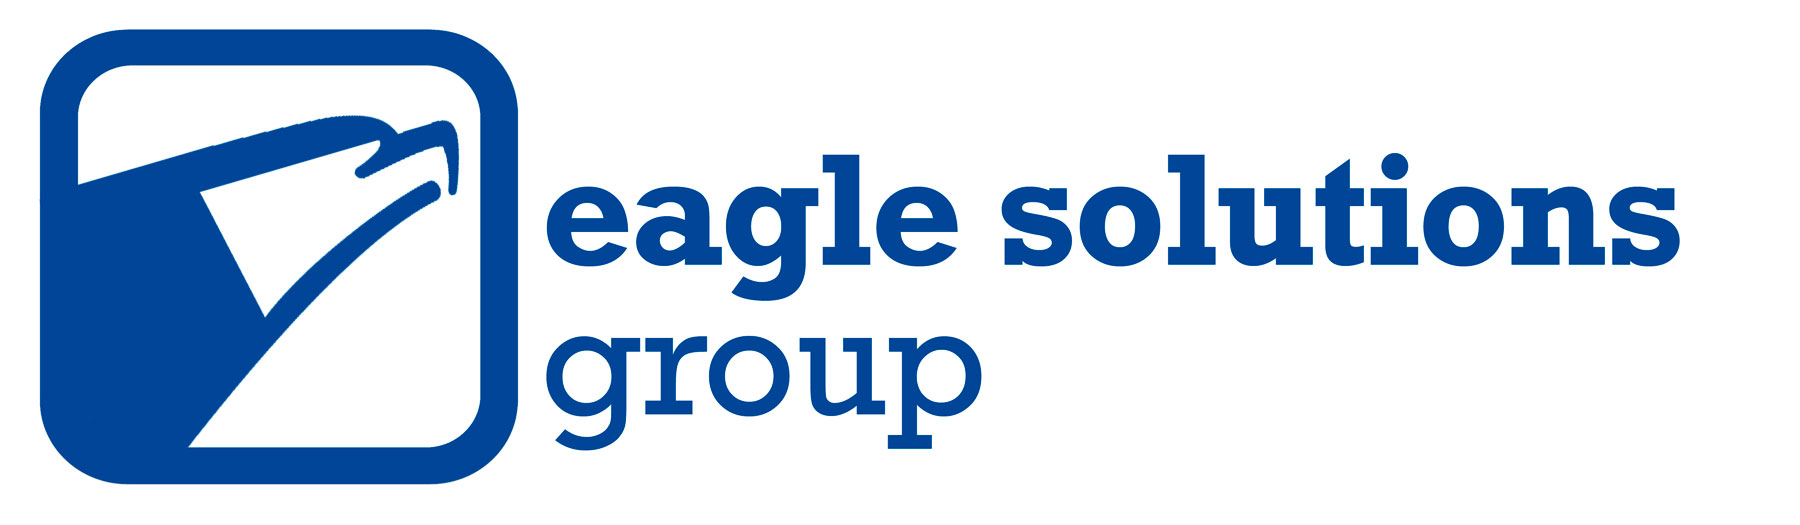 eagle group solutions brands of the world� download